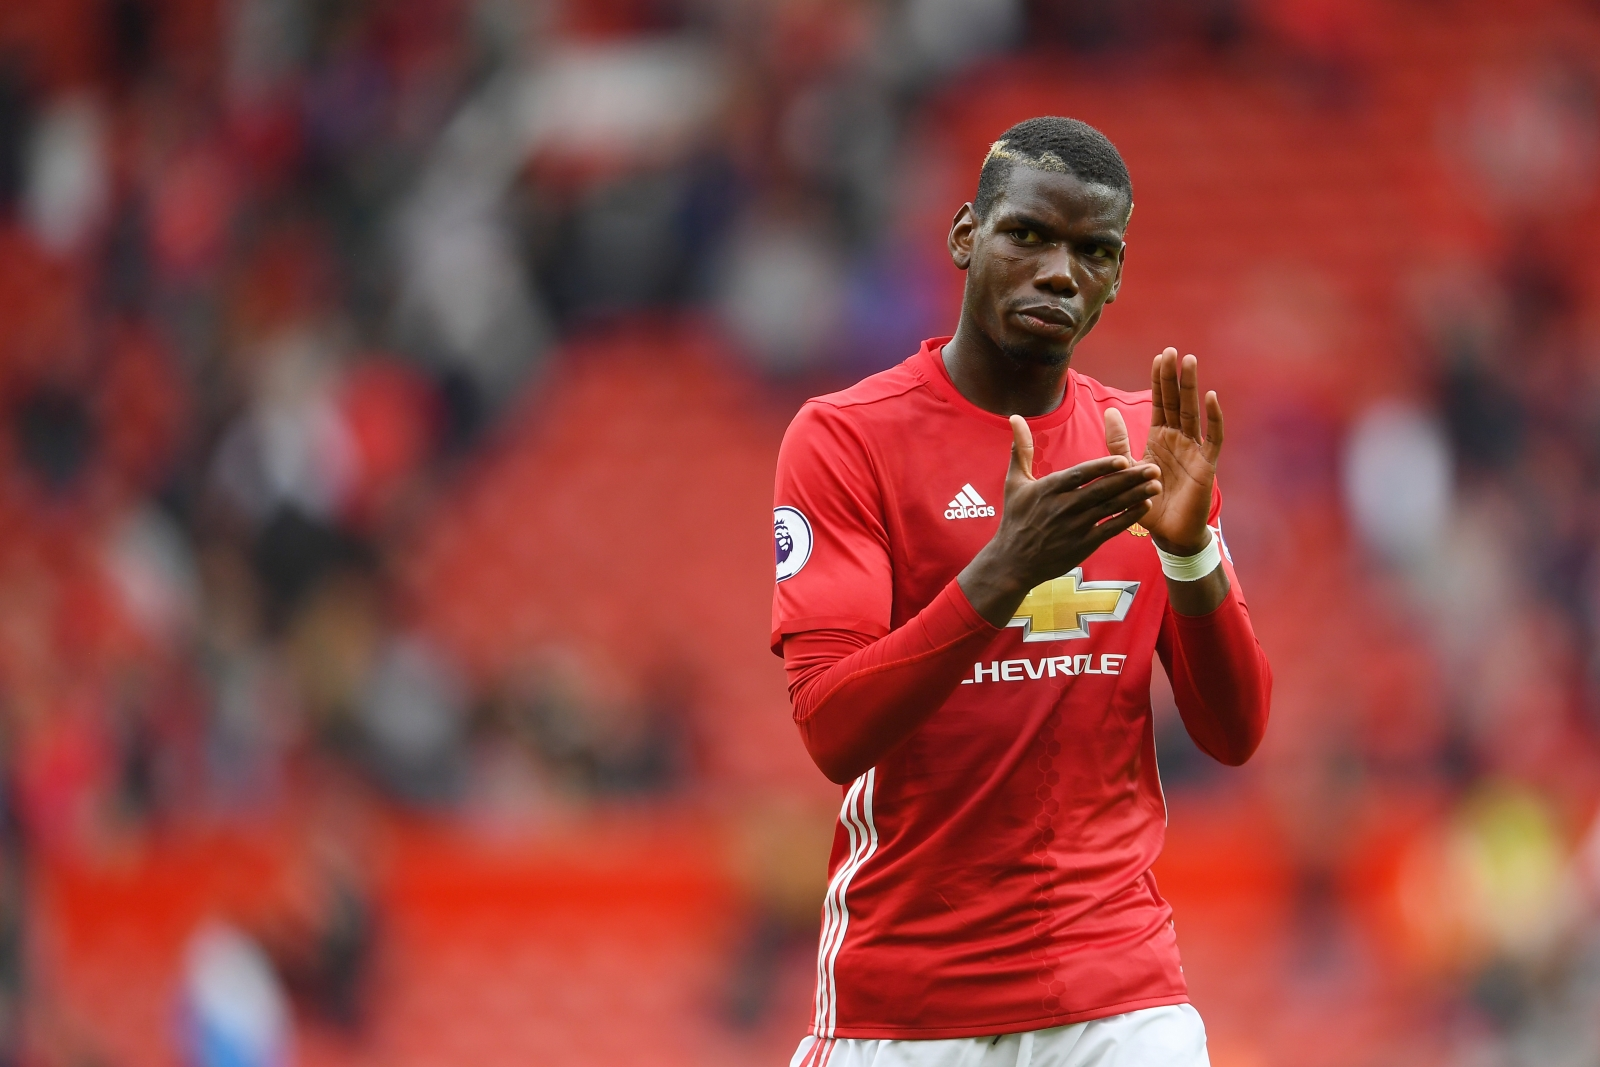 Departure of Paul Pogba is a reasonable move for Manchester United